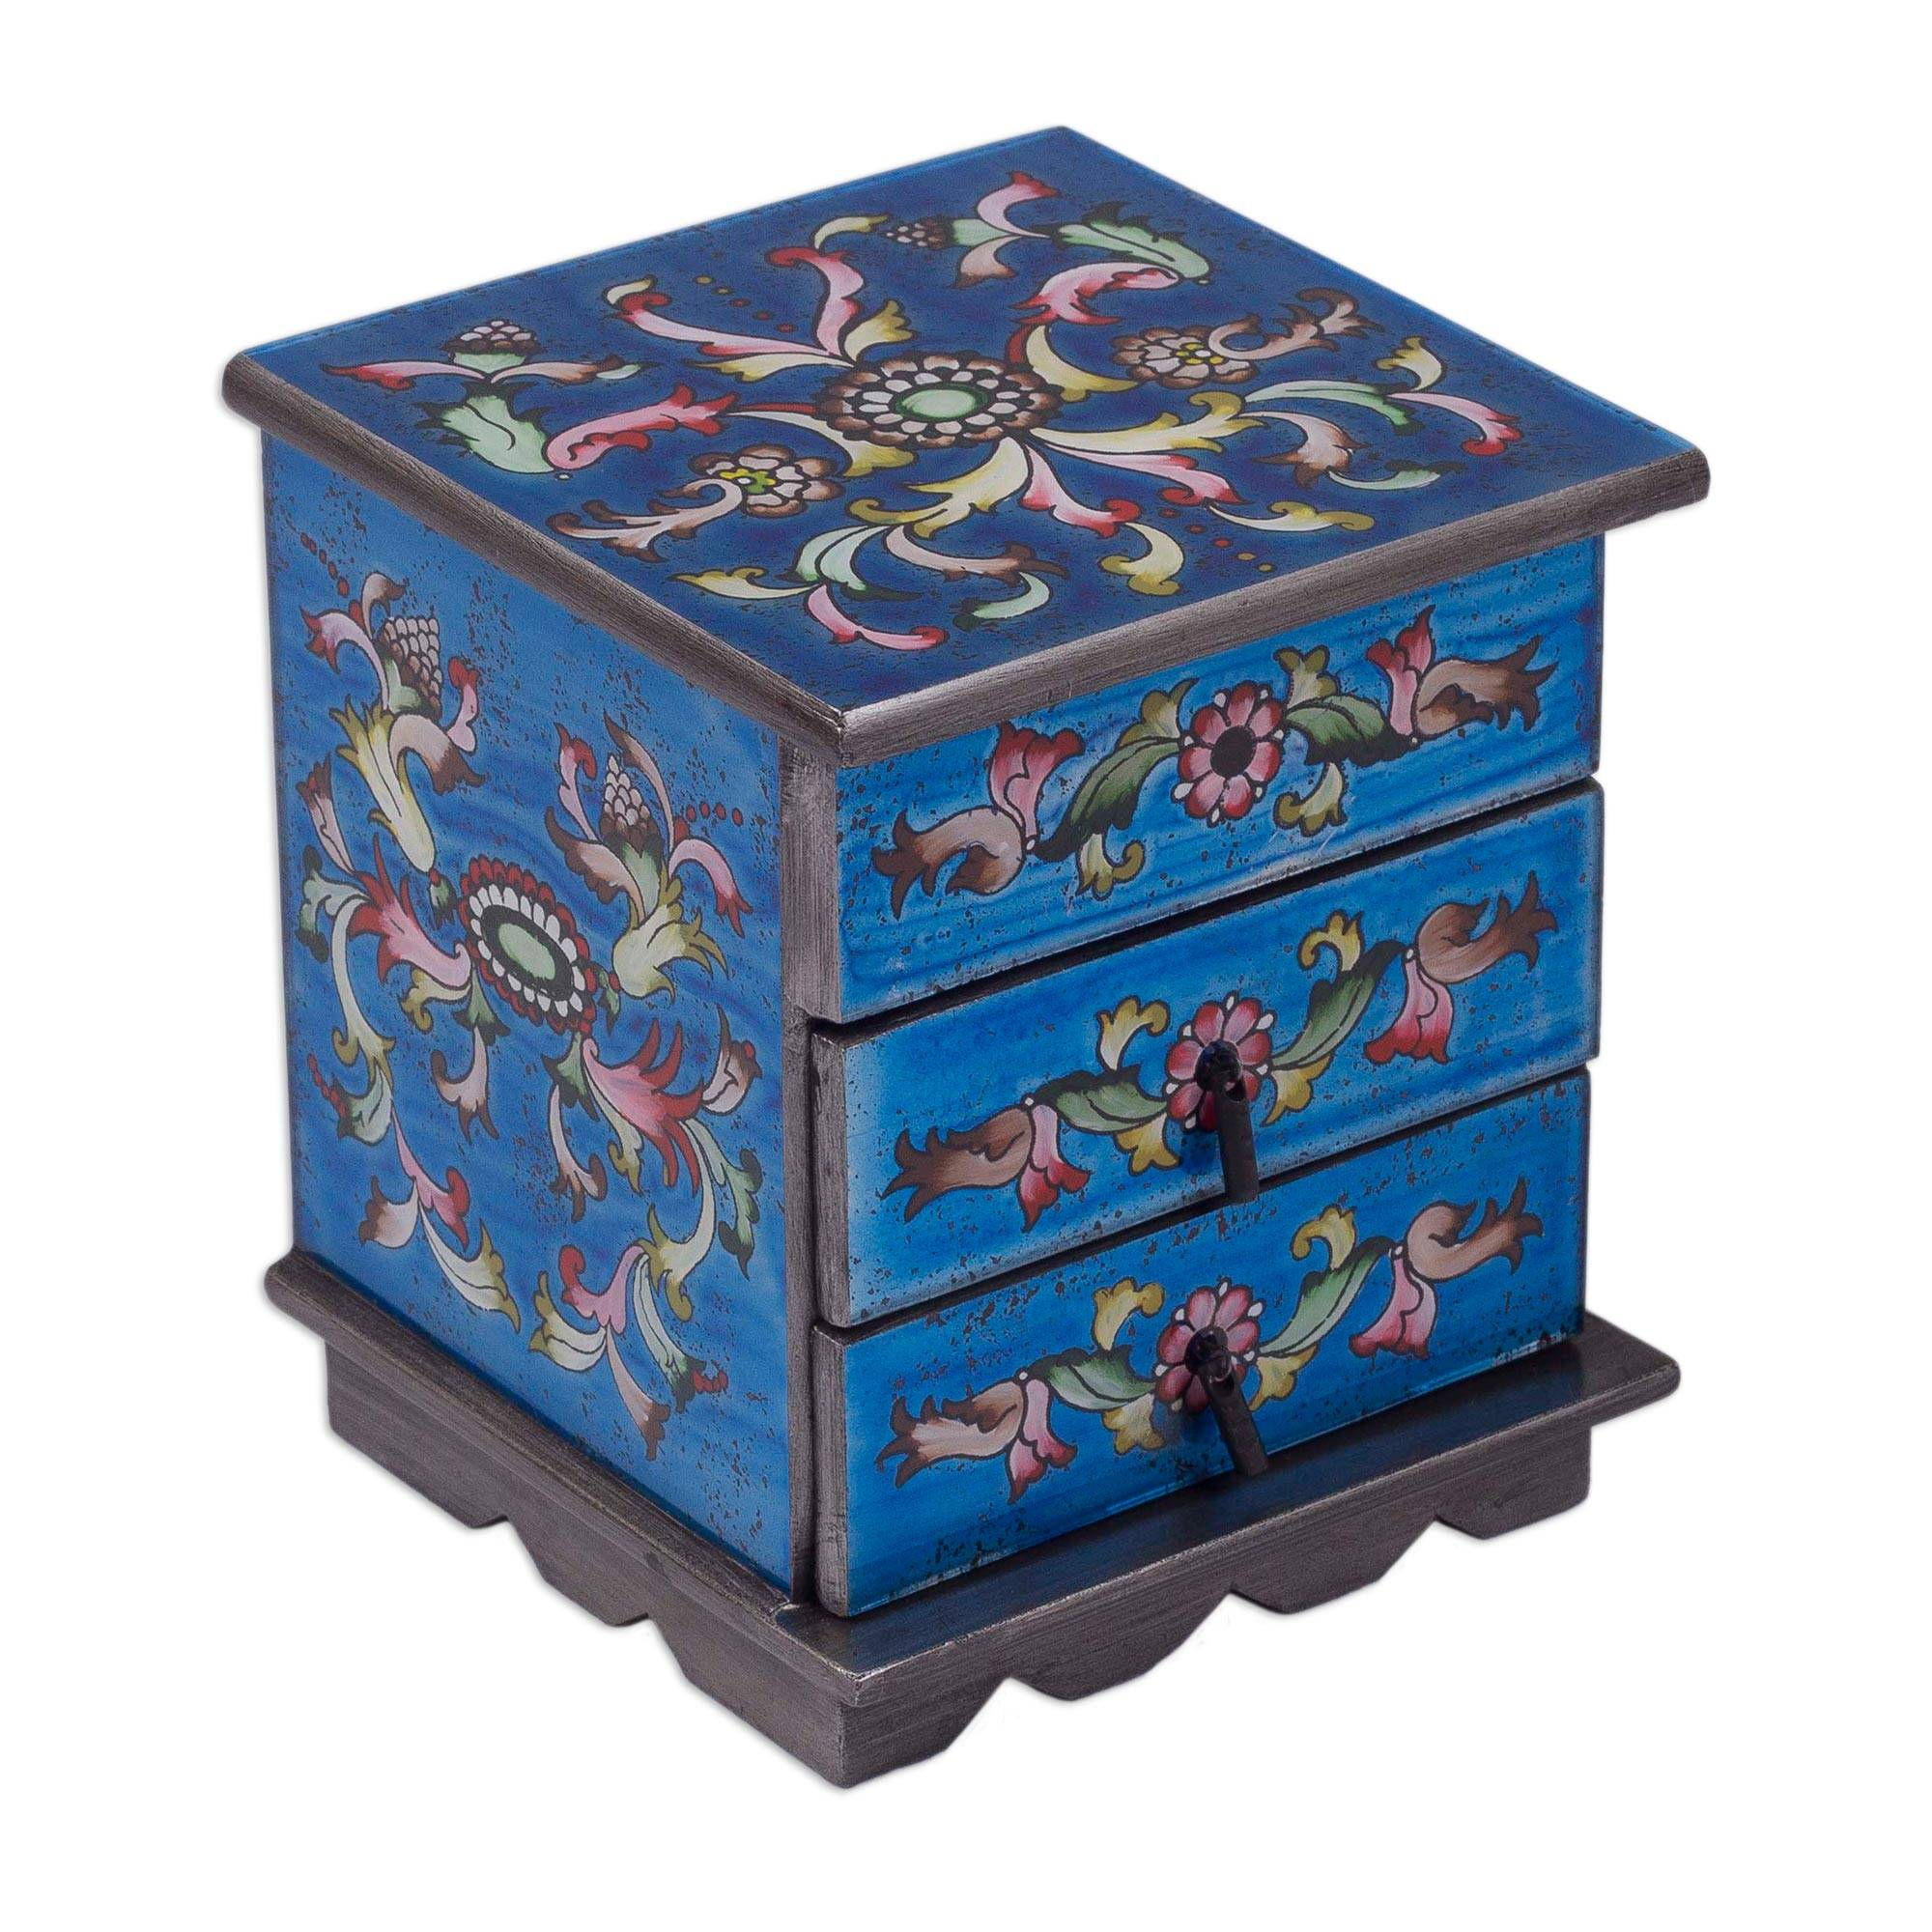 JEWELRY BOXES - Unique artisan-crafted jewelry boxes at NOVICA